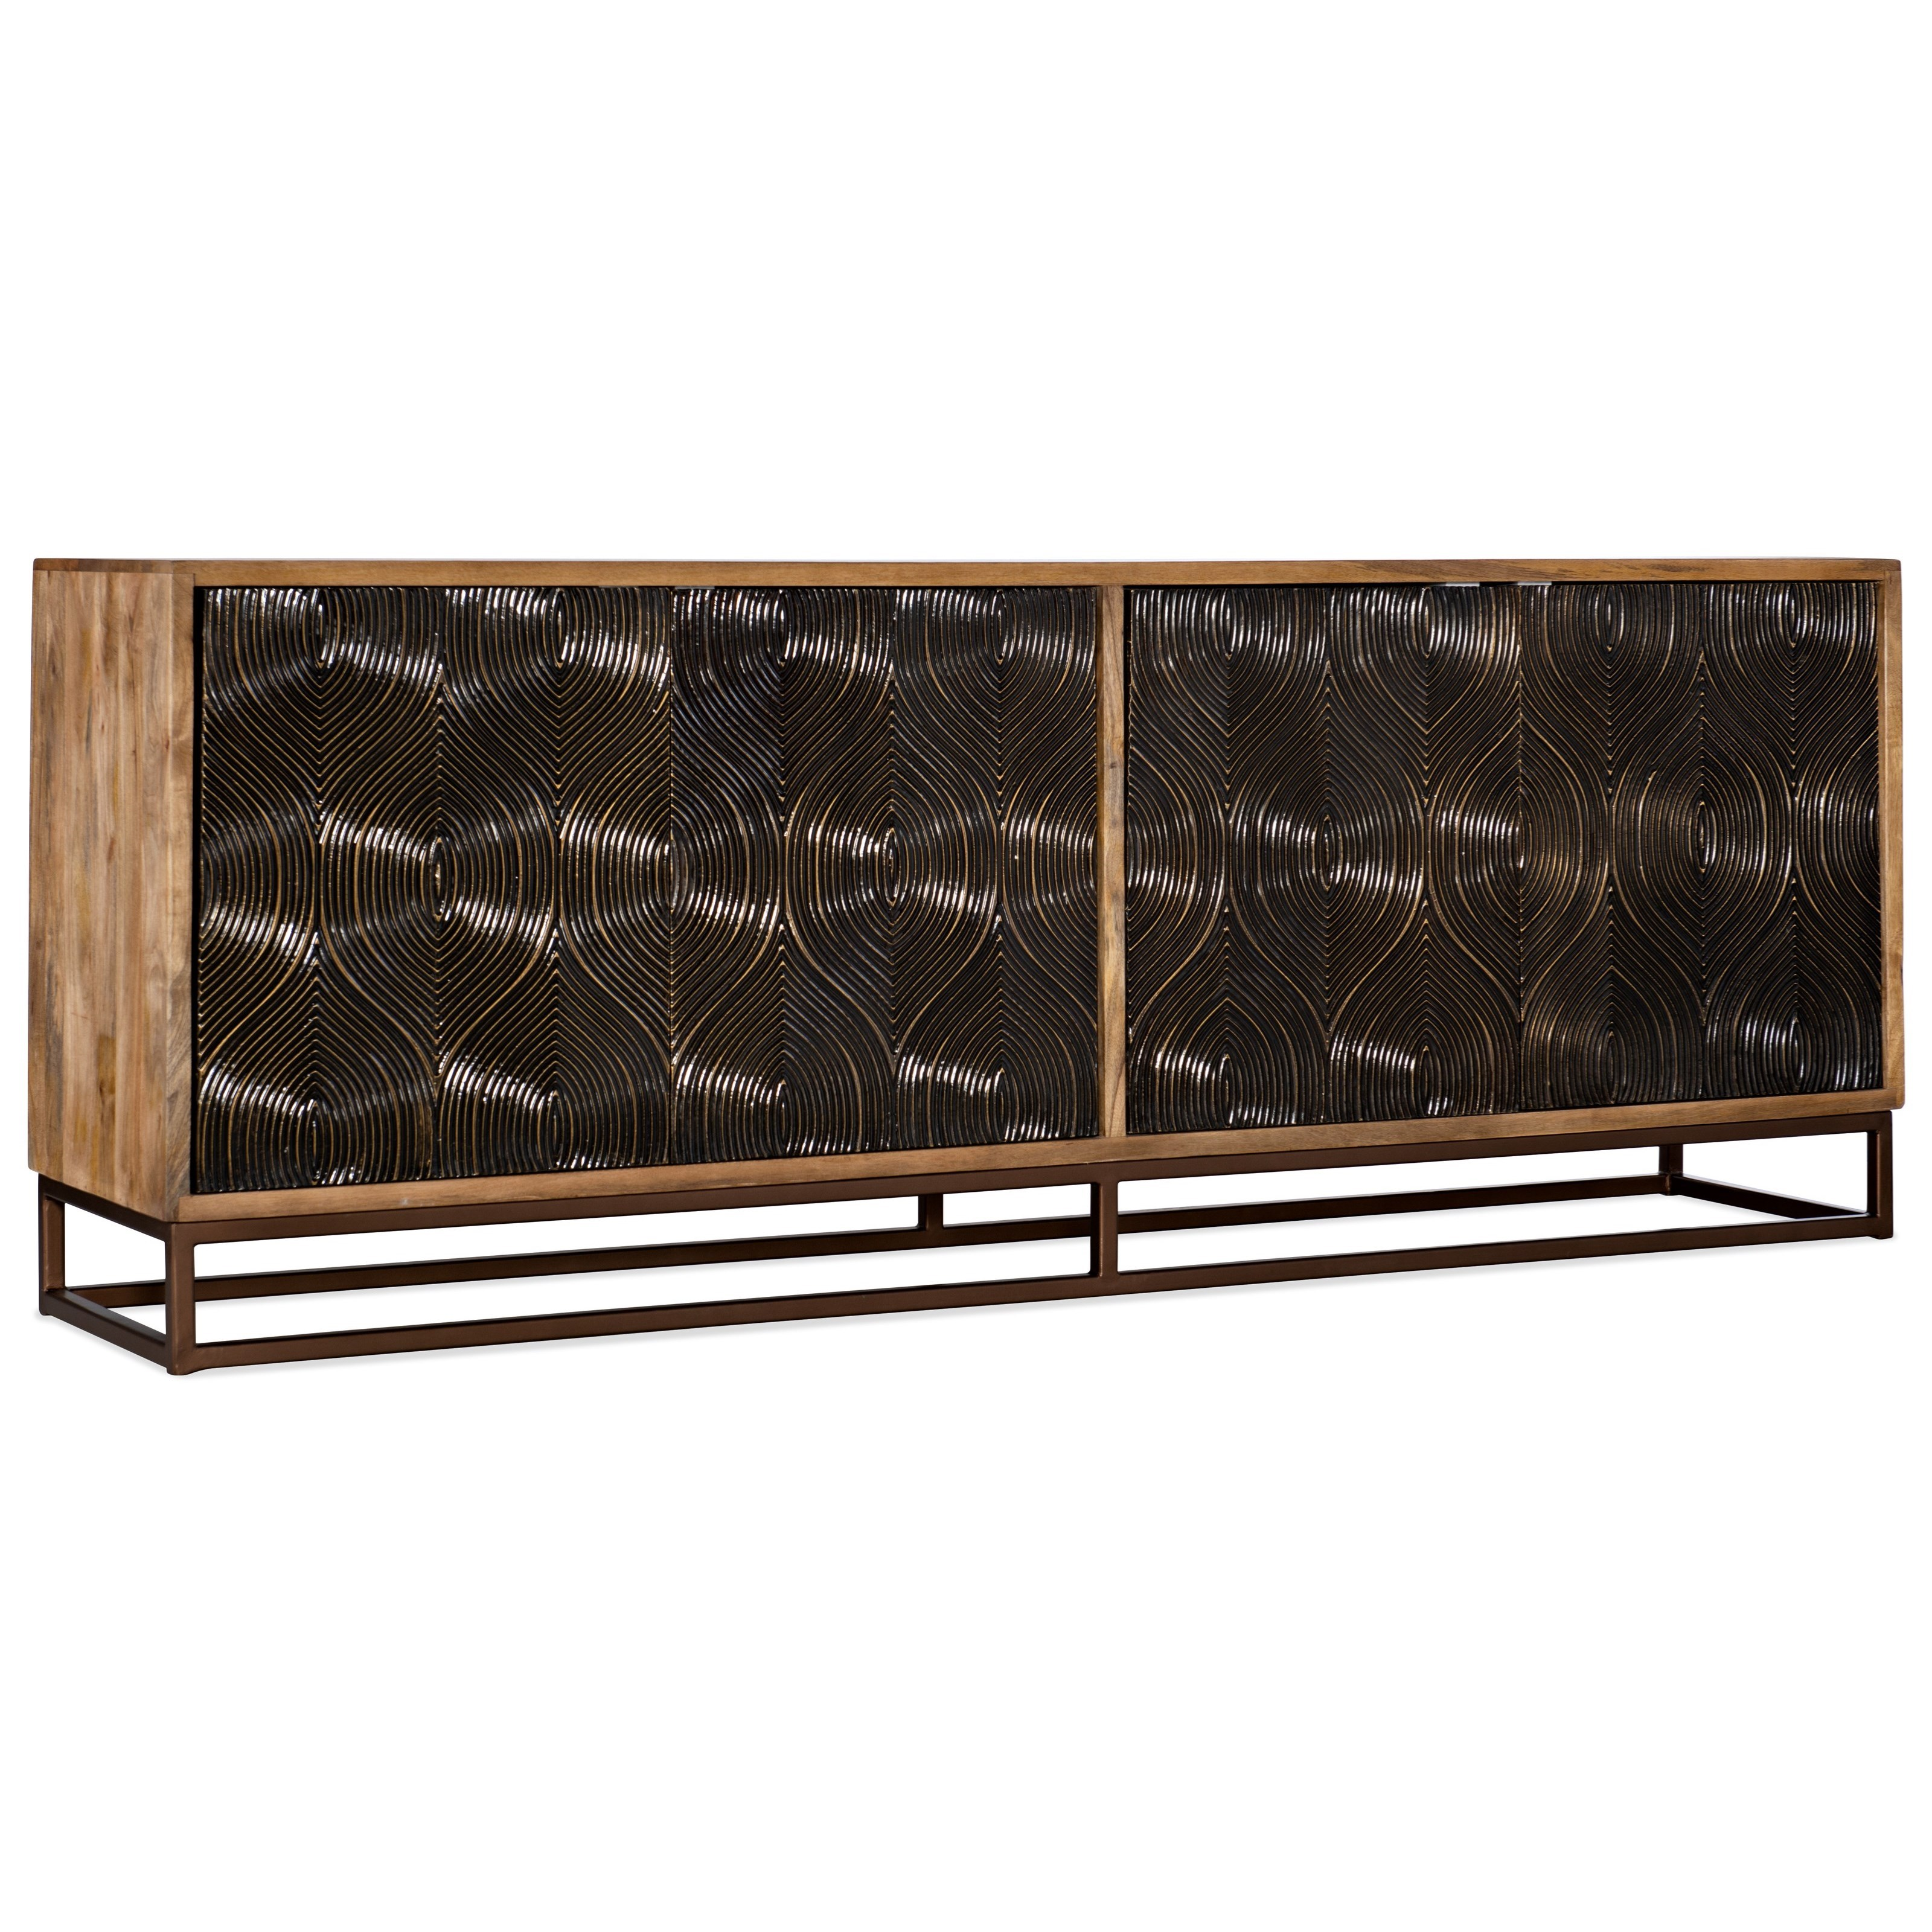 Living Room Accents Swirl Door Entertainment Console by Hooker Furniture at Baer's Furniture